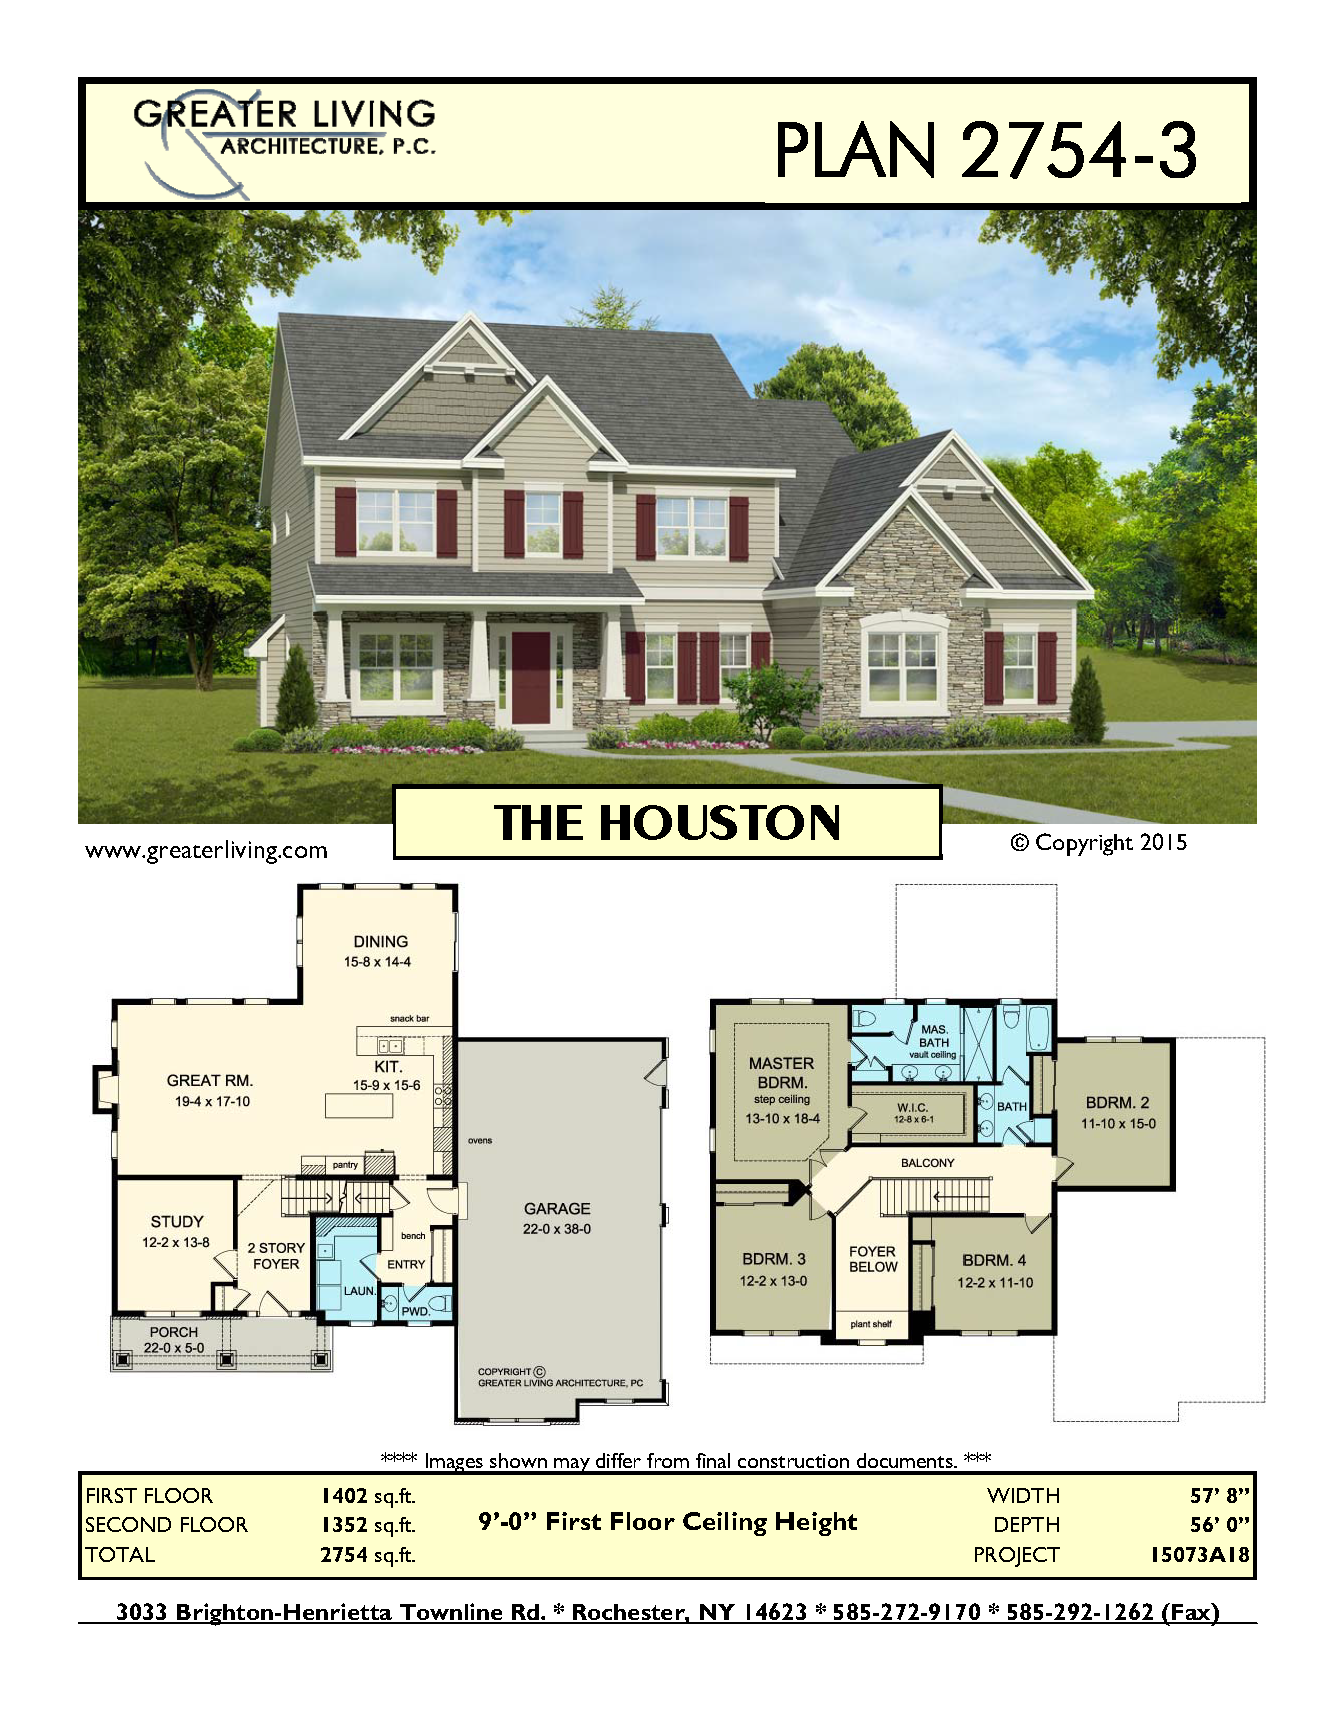 Plan 2754 3 The Houston House Plans Two Story House Plans 2 Story Greater Living Architecture Re Two Story House Plans House Plans House Blueprints